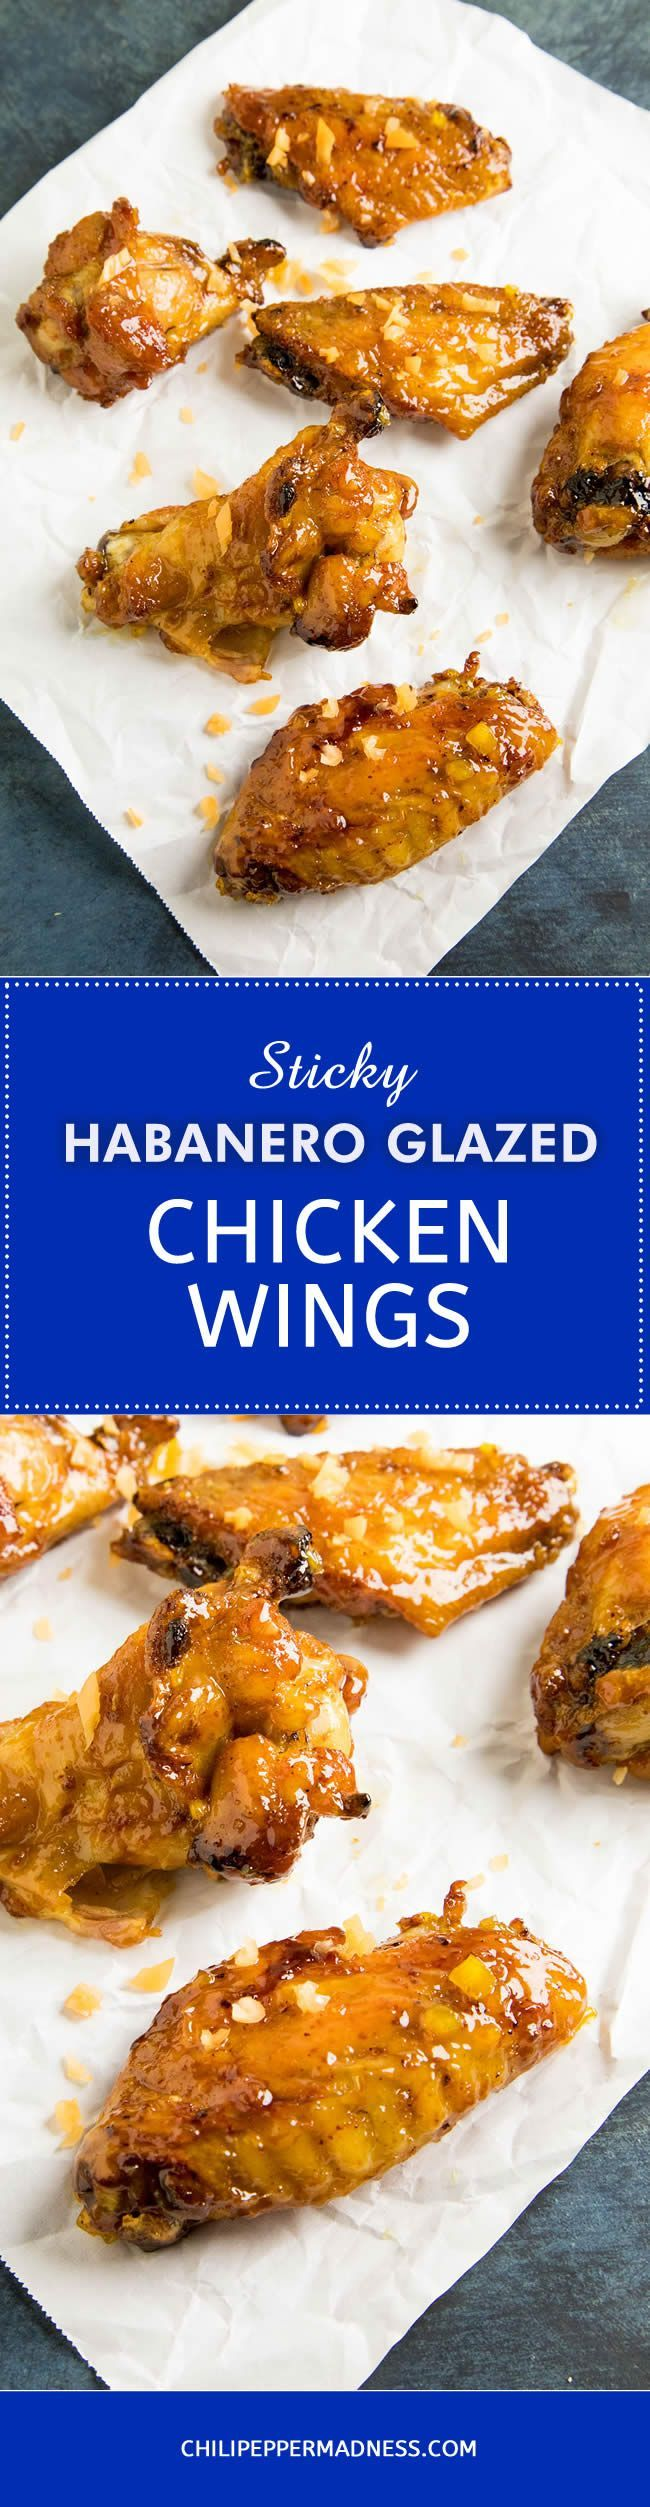 Sticky Habanero Glazed Chicken Wings – A recipe for spicy chicken wings seasoned and baked to the perfect crispiness, then tossed with sweet pepper jam and habanero peppers. Easy to make and perfect for game day. Or any day!  #recipe #recipeoftheday #recipeideas #recipesharing #chickenwings #gameday #gamedayfood #habanero #spicy #spicyfood #hotandspicy